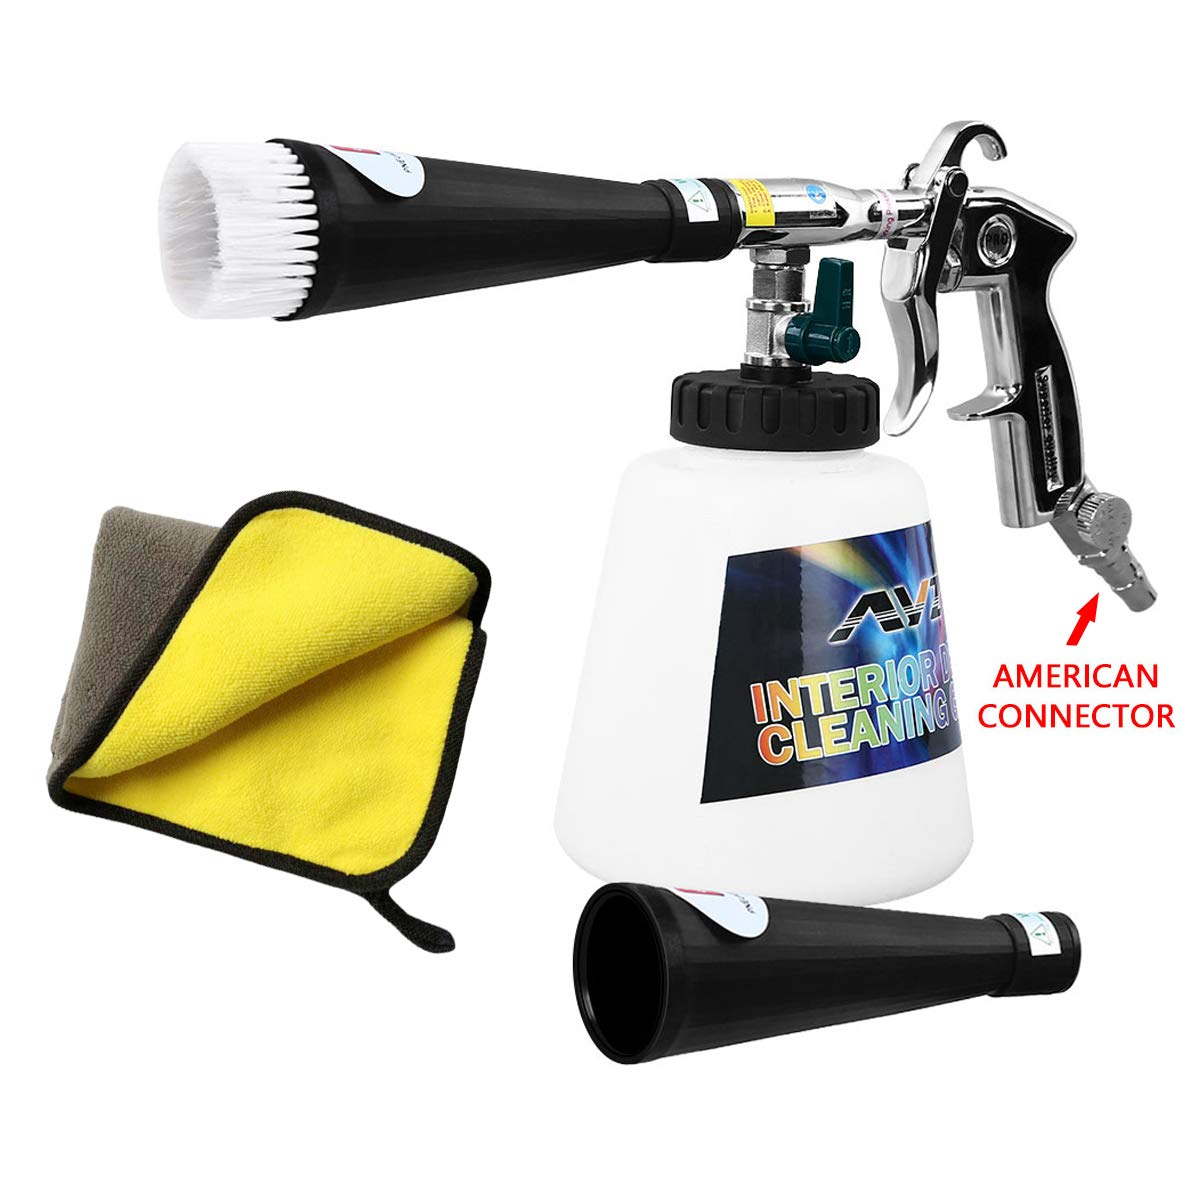 YVO Car Cleaning Gun Interior Cleaner Foam Gun Wash Kit High Pressure Washing Detailing Tool Automotive Care Essentials Fine Cleaning Device Interior Exterior